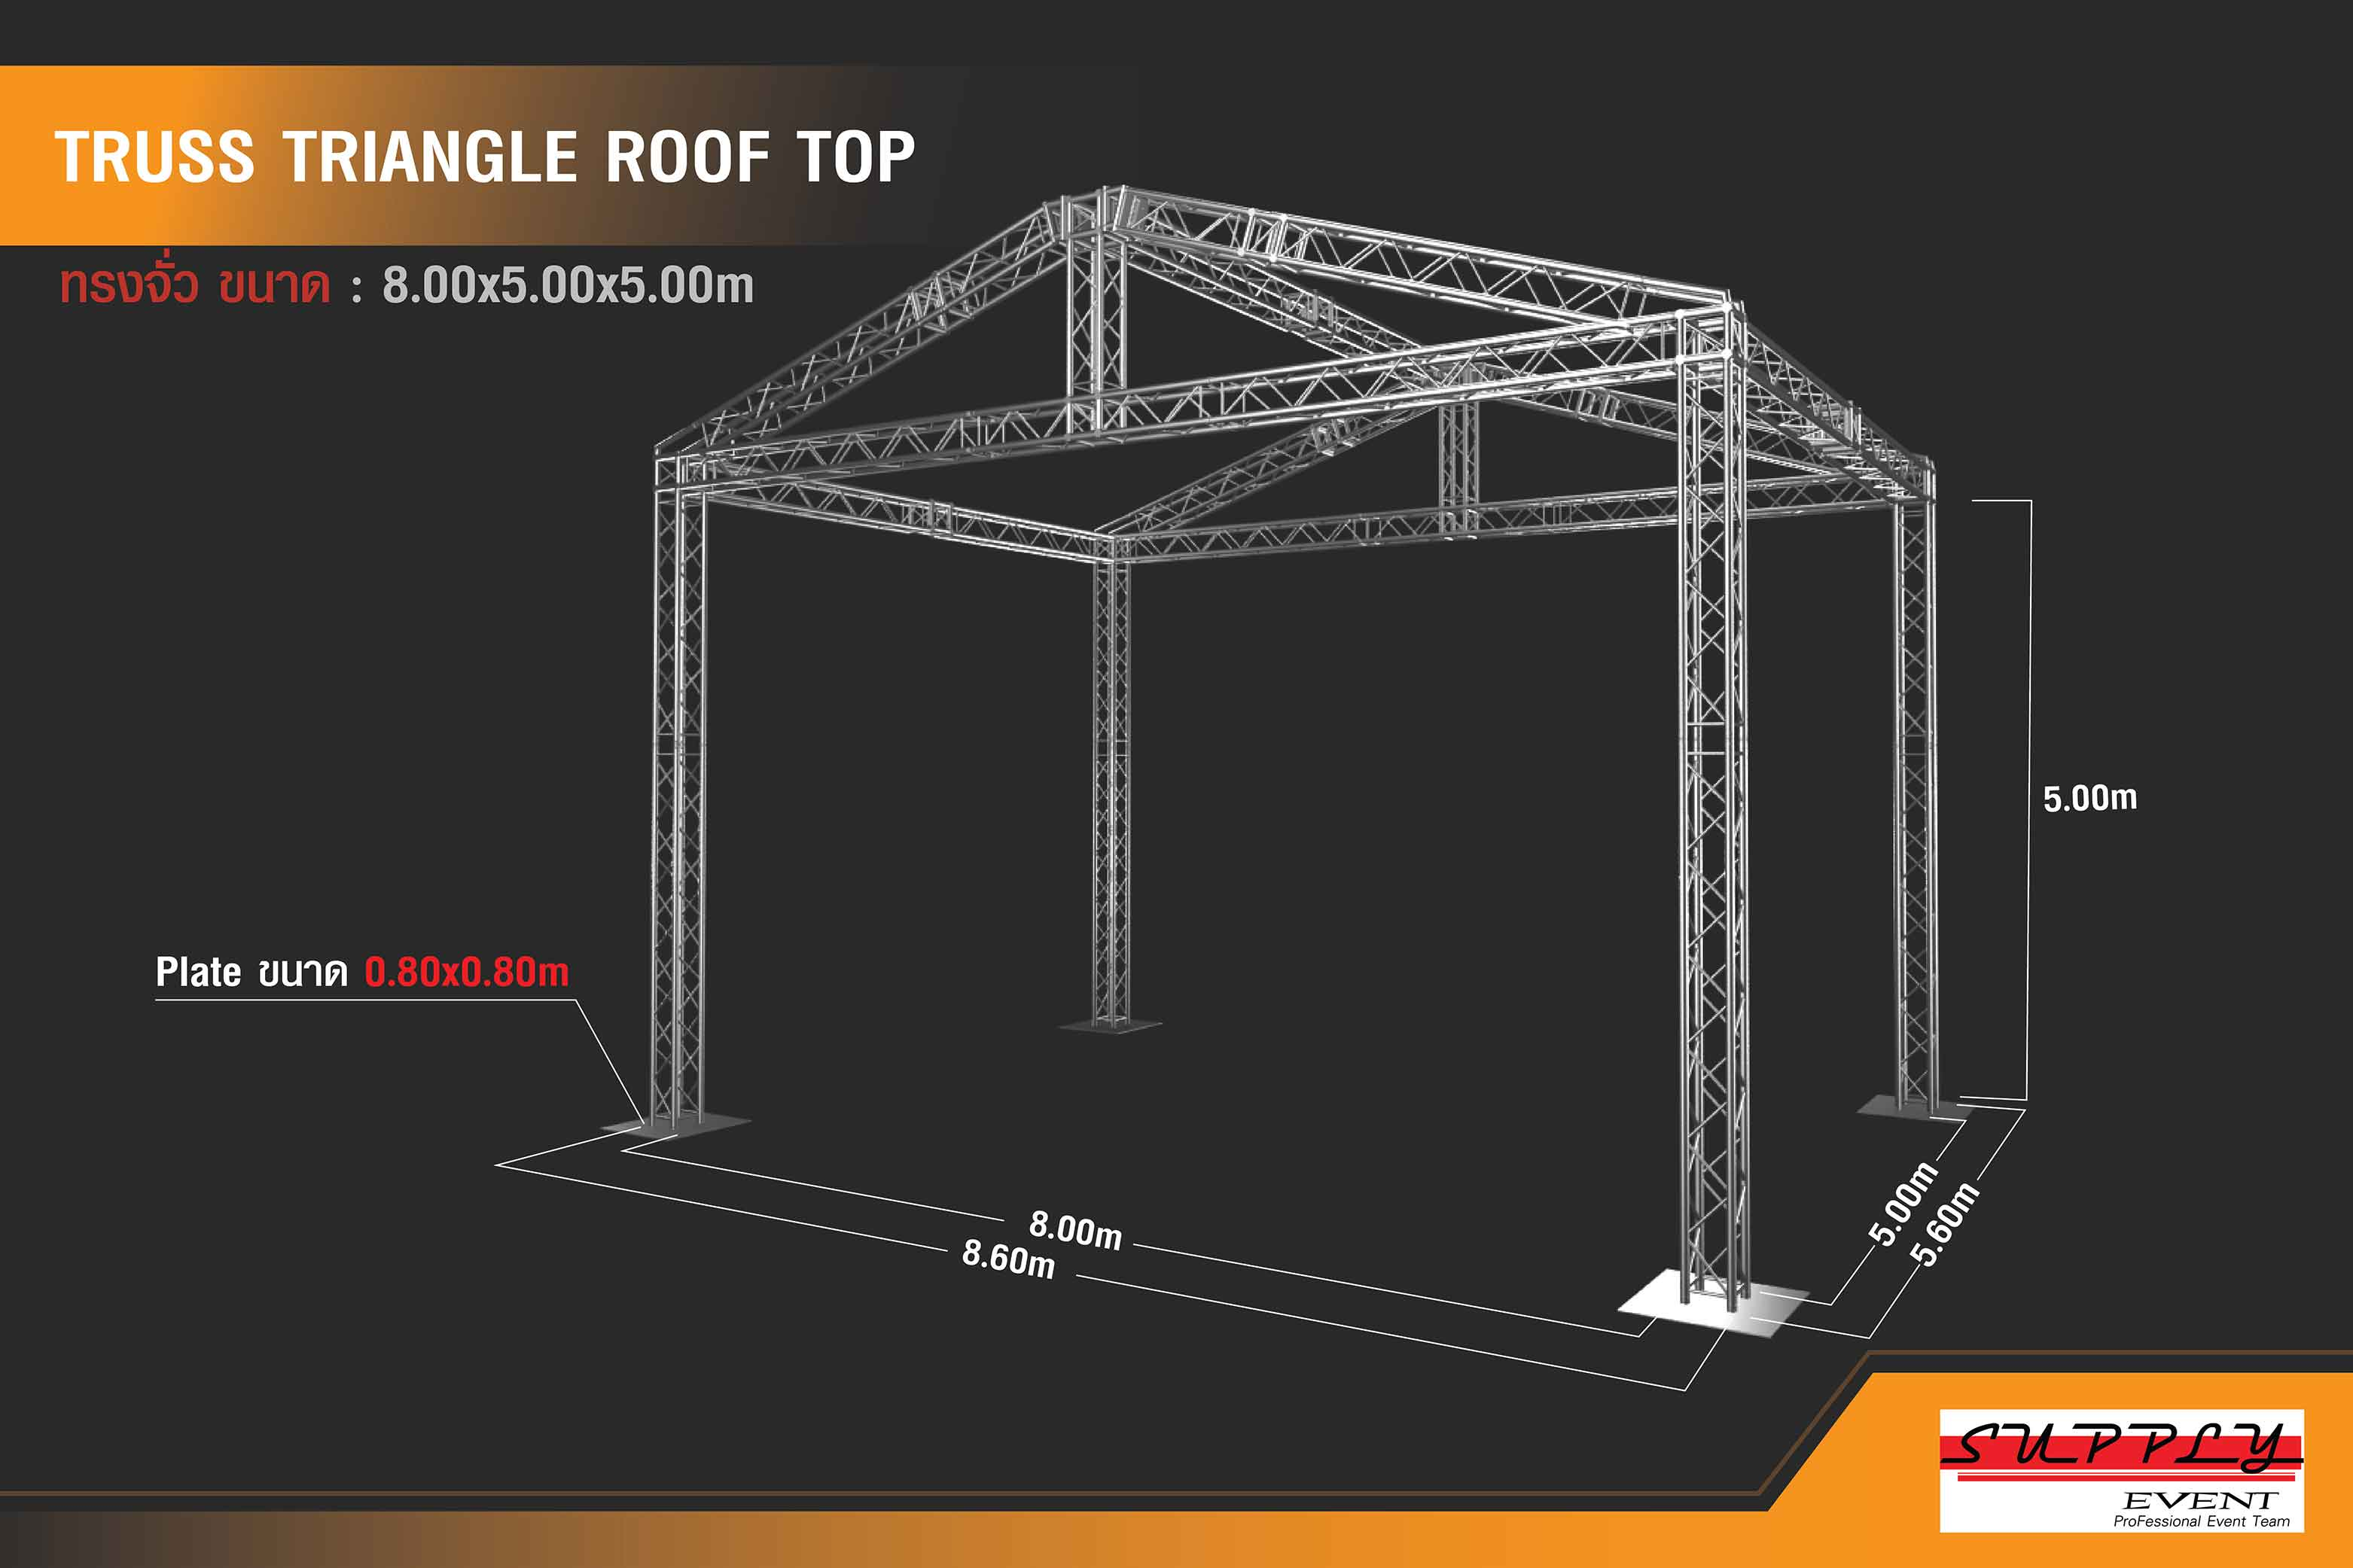 Truss triangle roof top